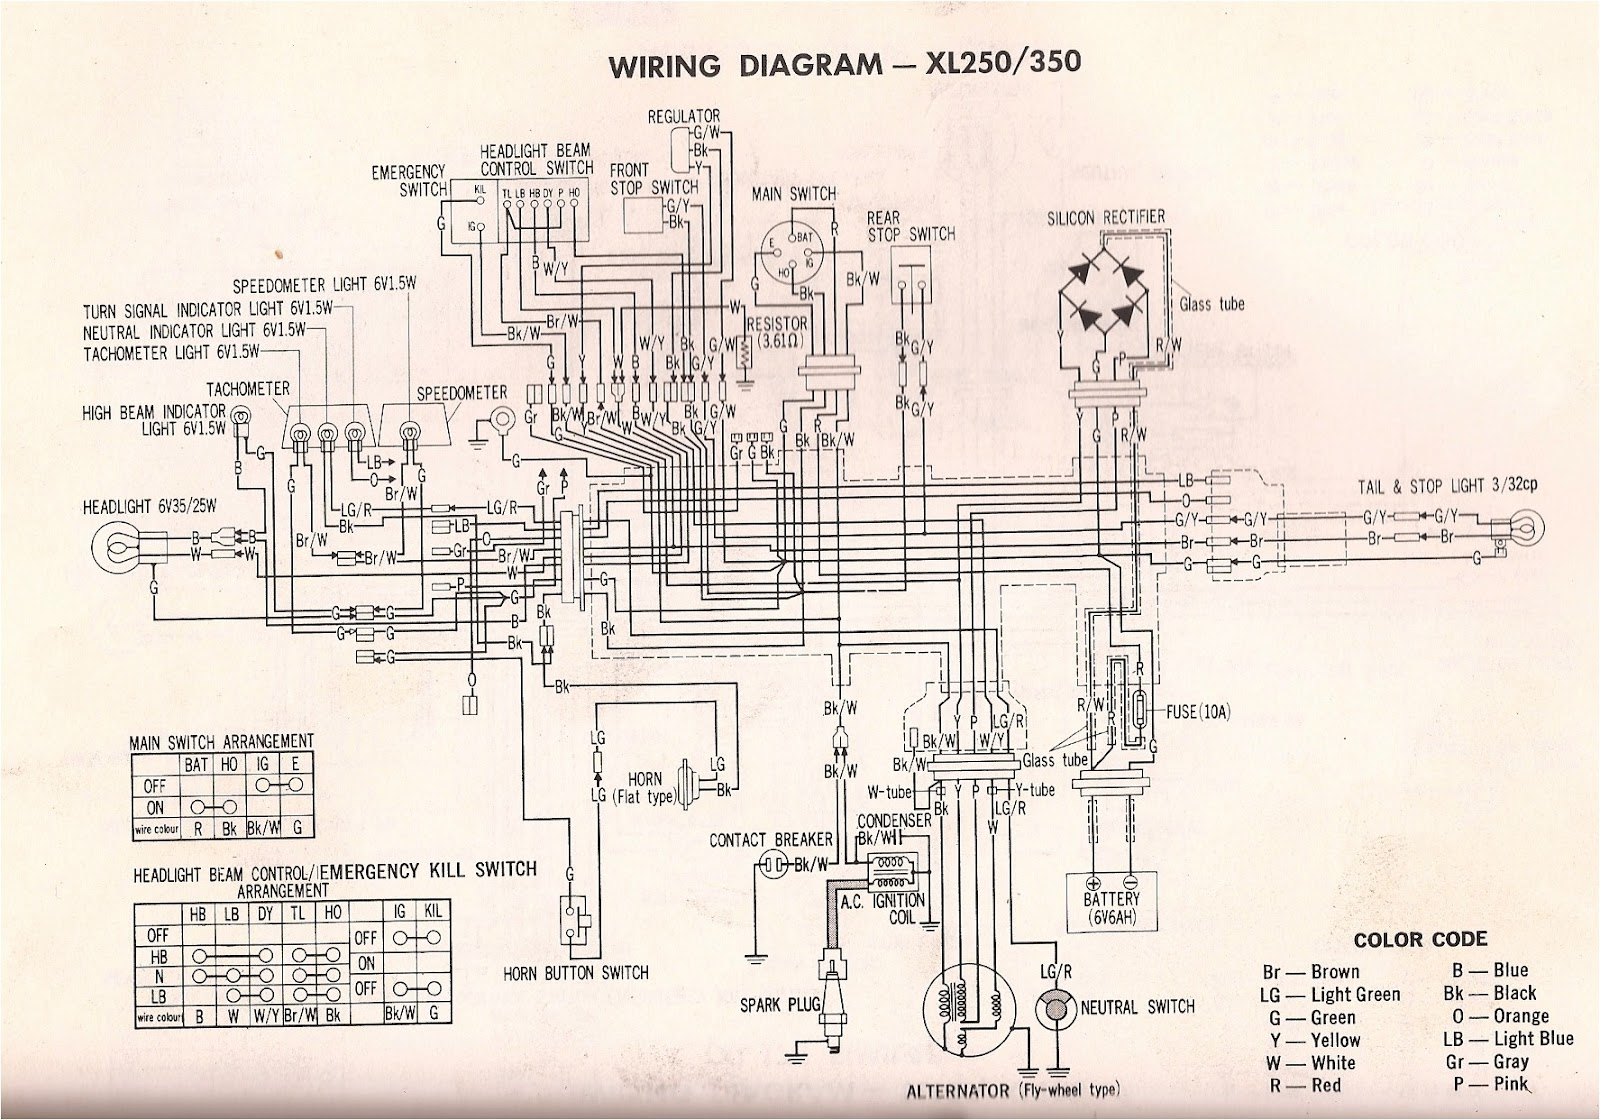 1975 Honda Xl 350 Wiring Diagram Electrical Drawing 1974 Yamaha 360 Enduro Dream Example U2022 Rh Cranejapan Co 250cc 1972